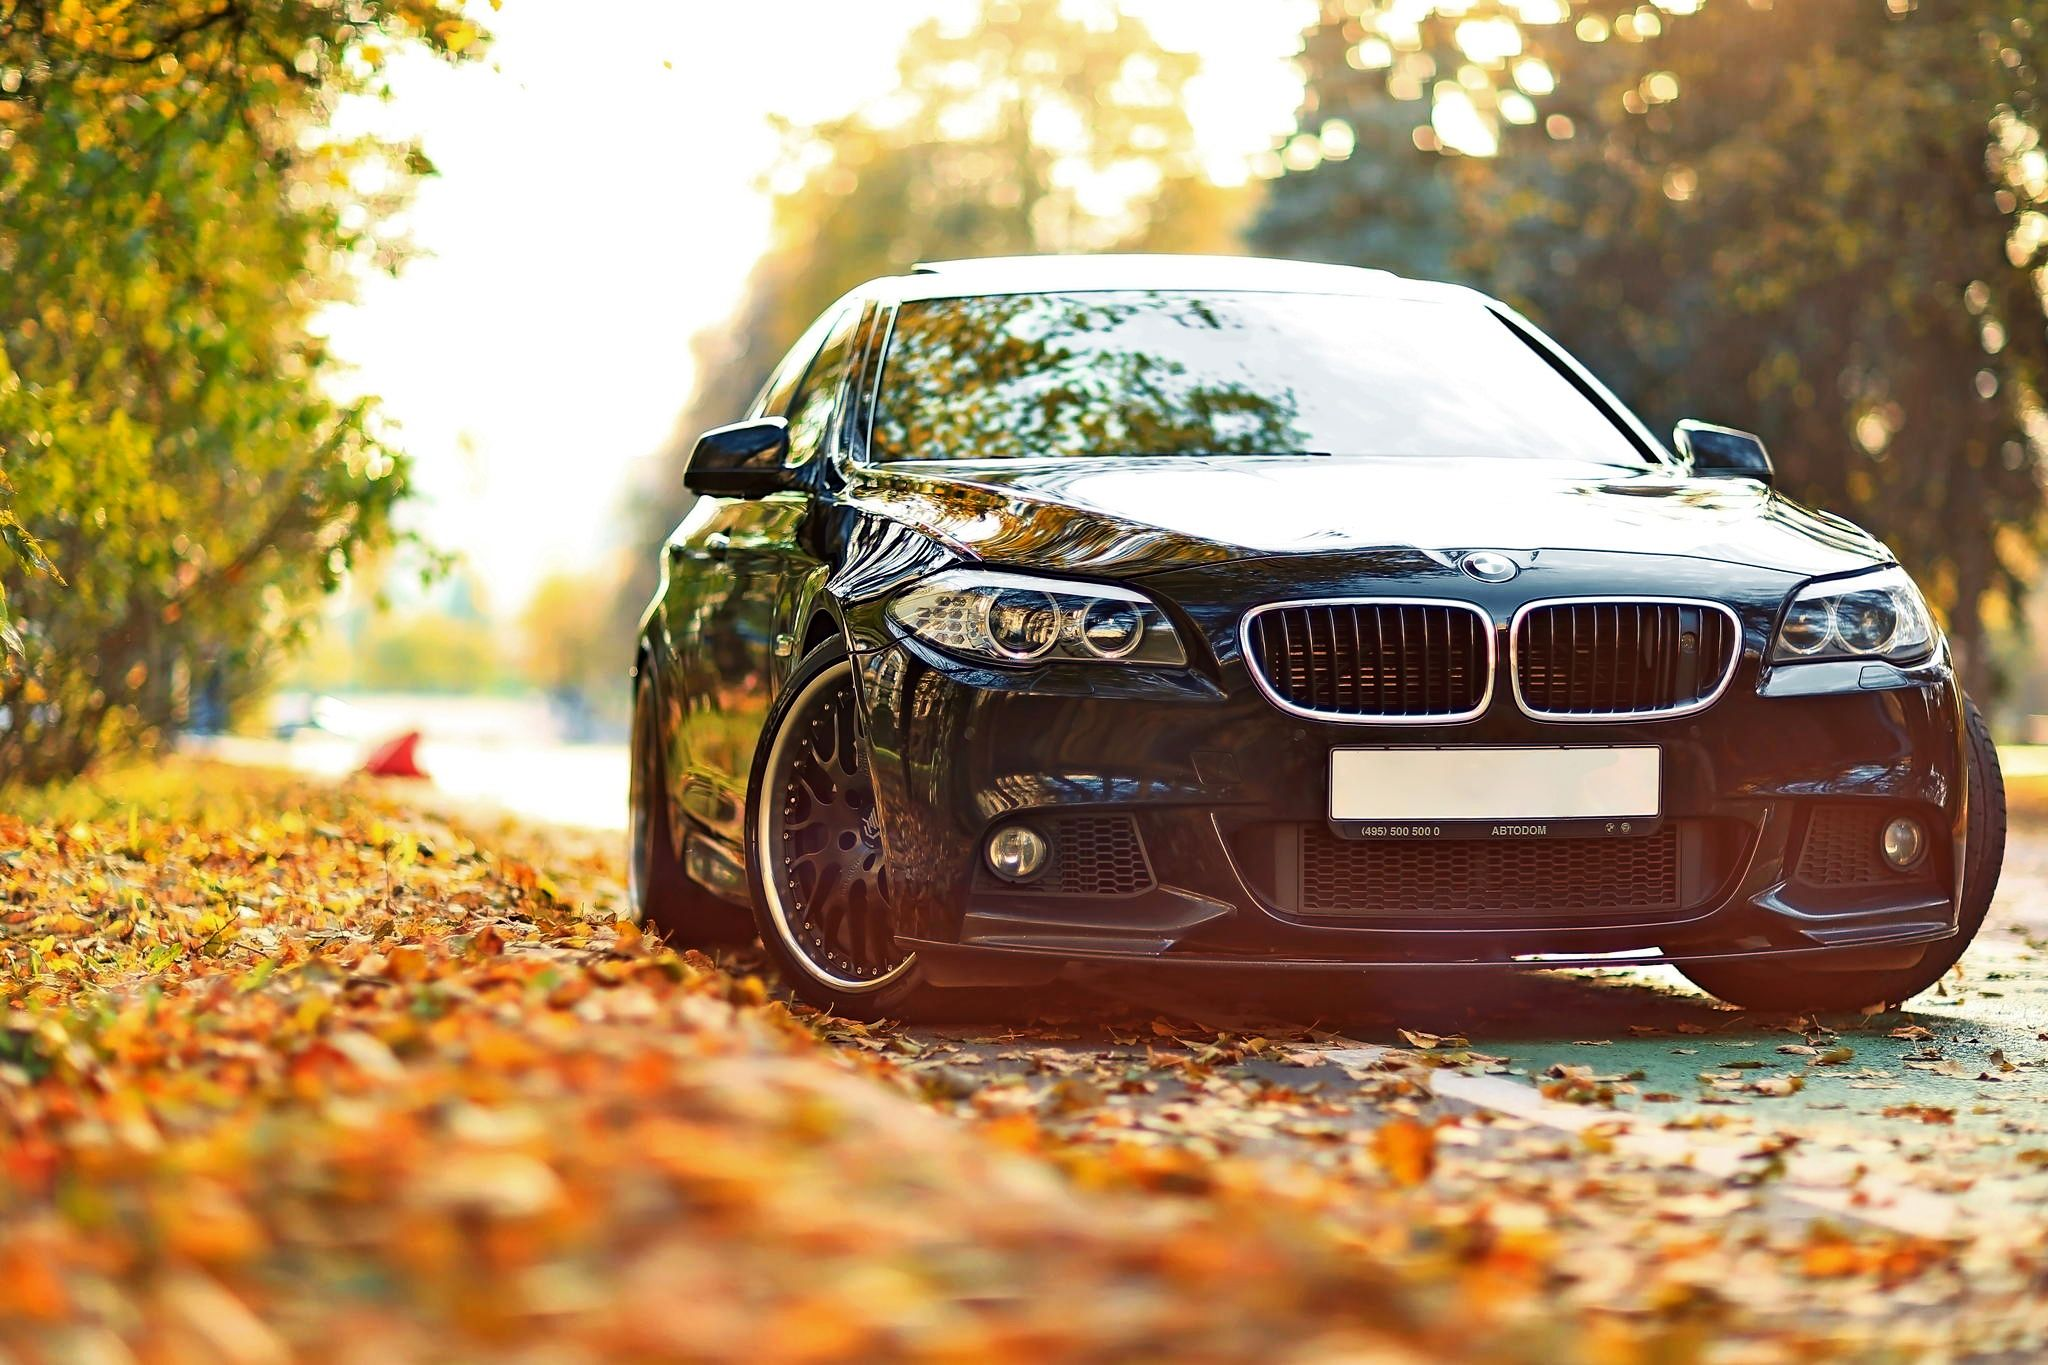 Bmw Car Hd Wallpaper With Images Car Hd Bmw Car